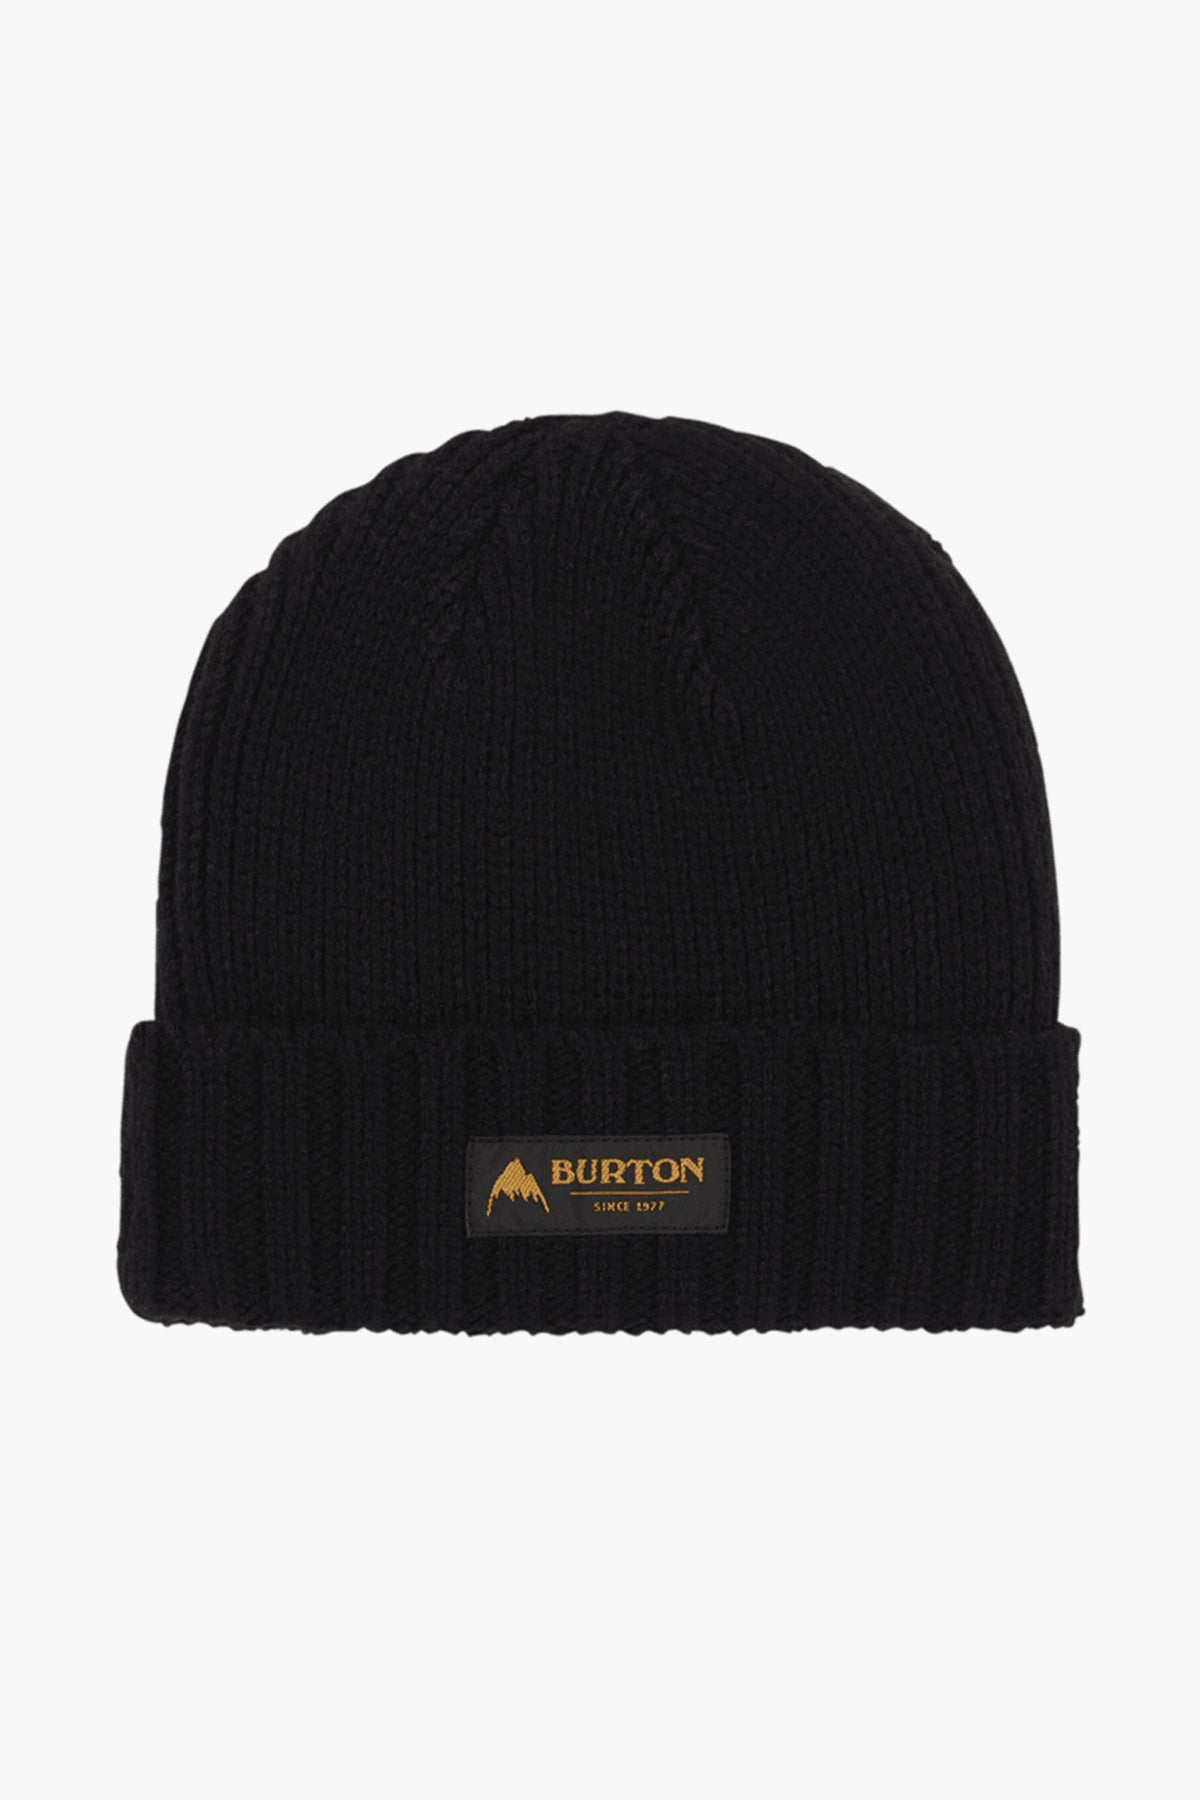 Burton Skully Kids Hat - Black